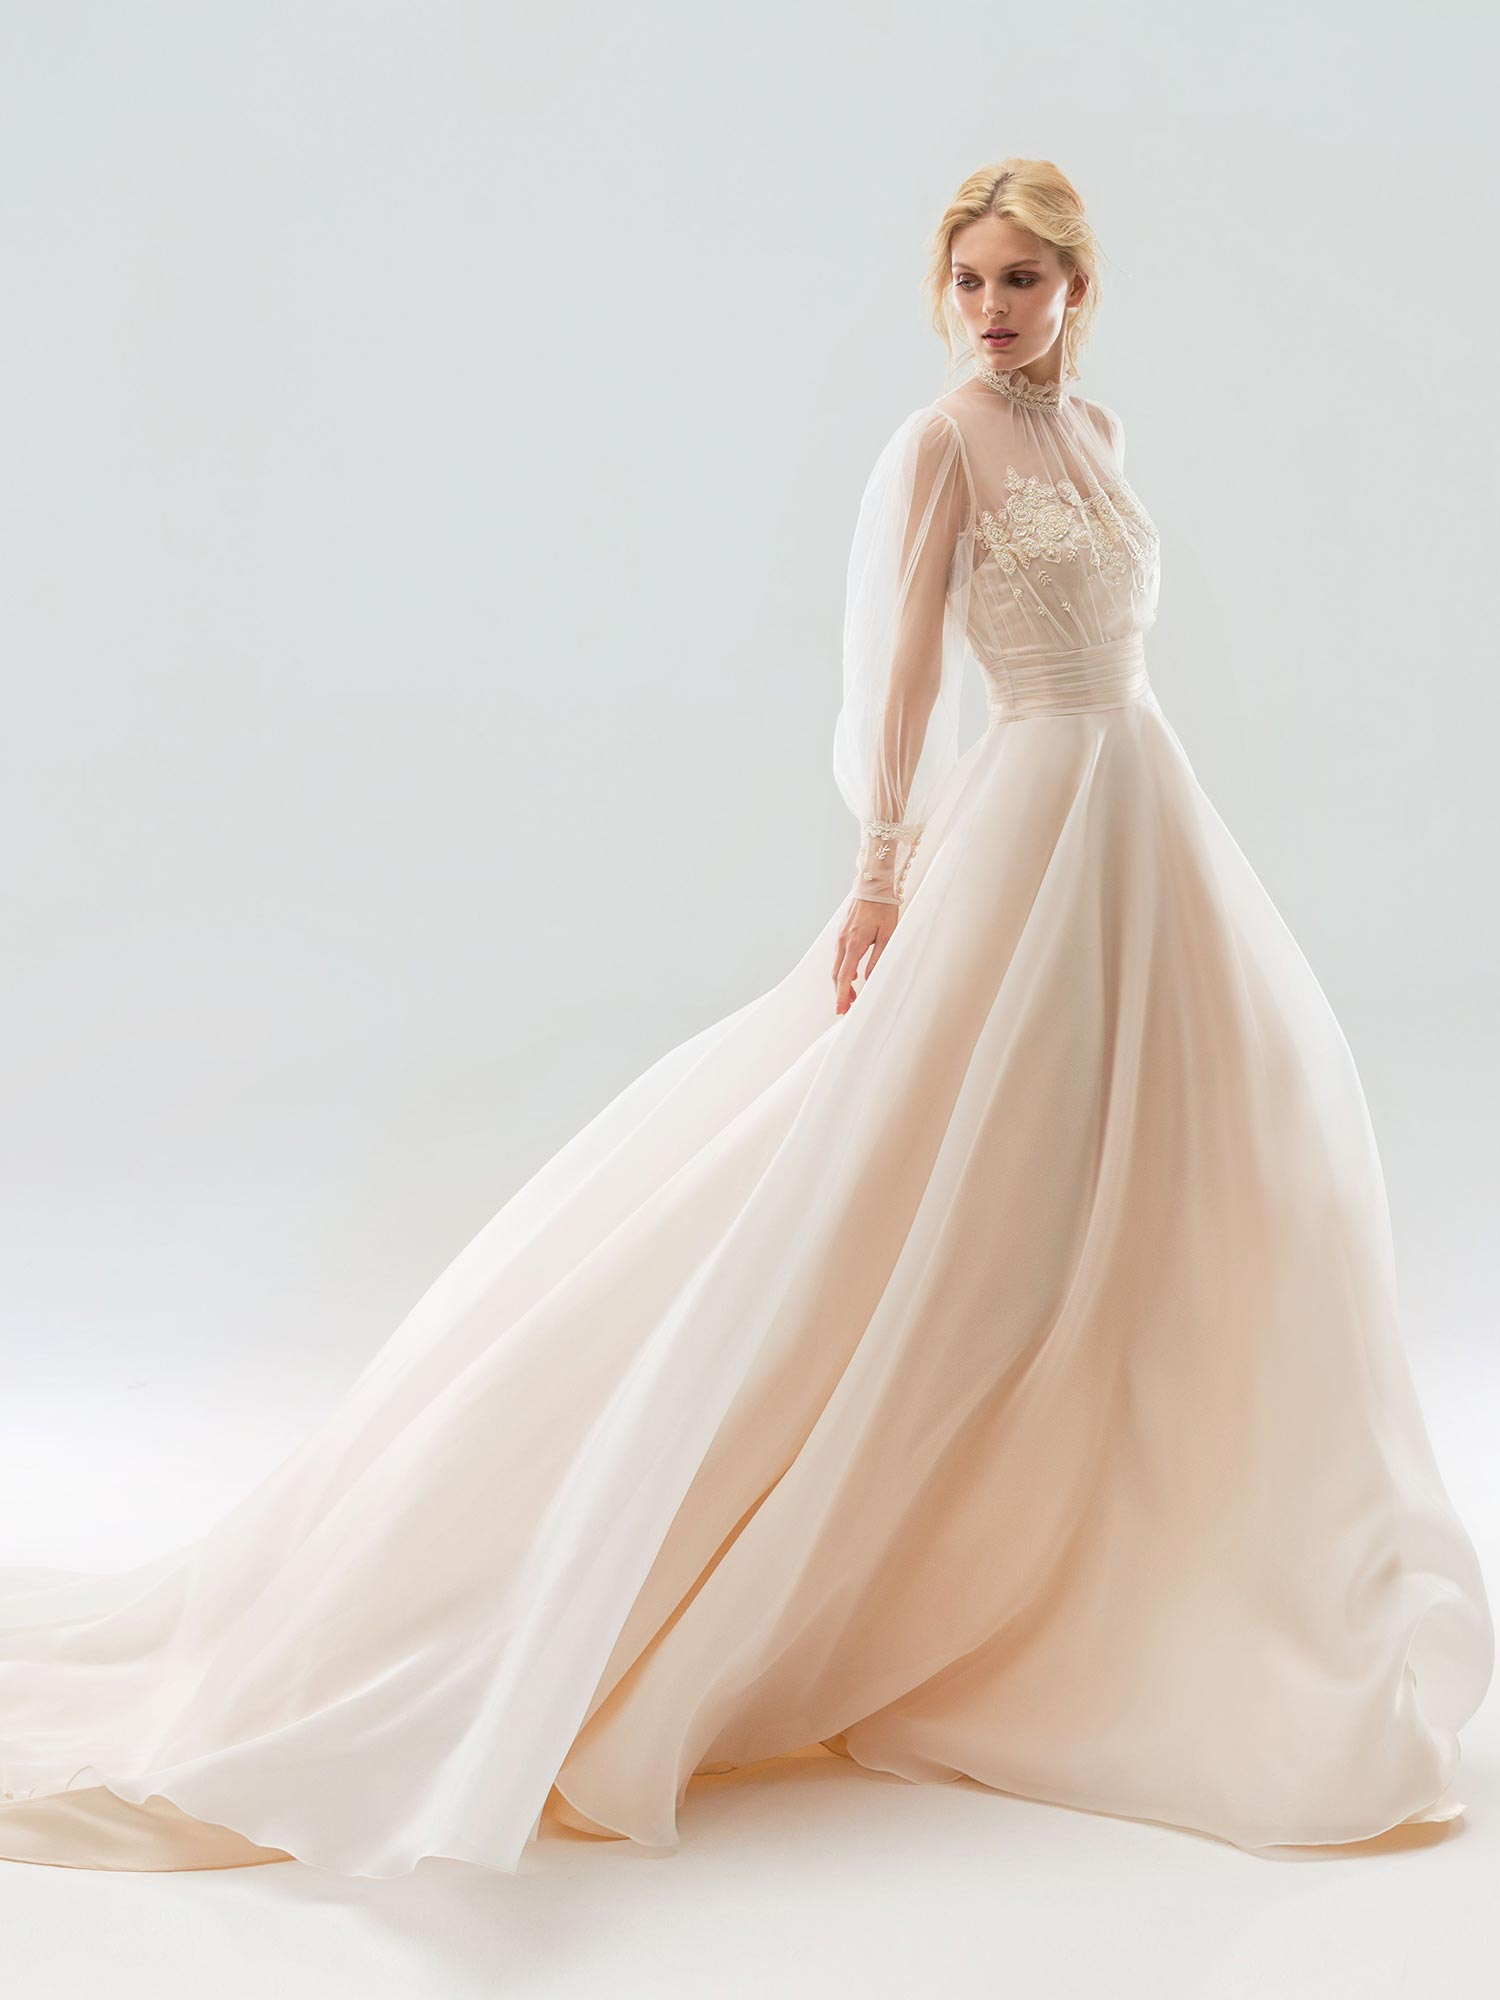 Bishop Sleeved Wedding Dress With High Neckline And Lace Embroidery